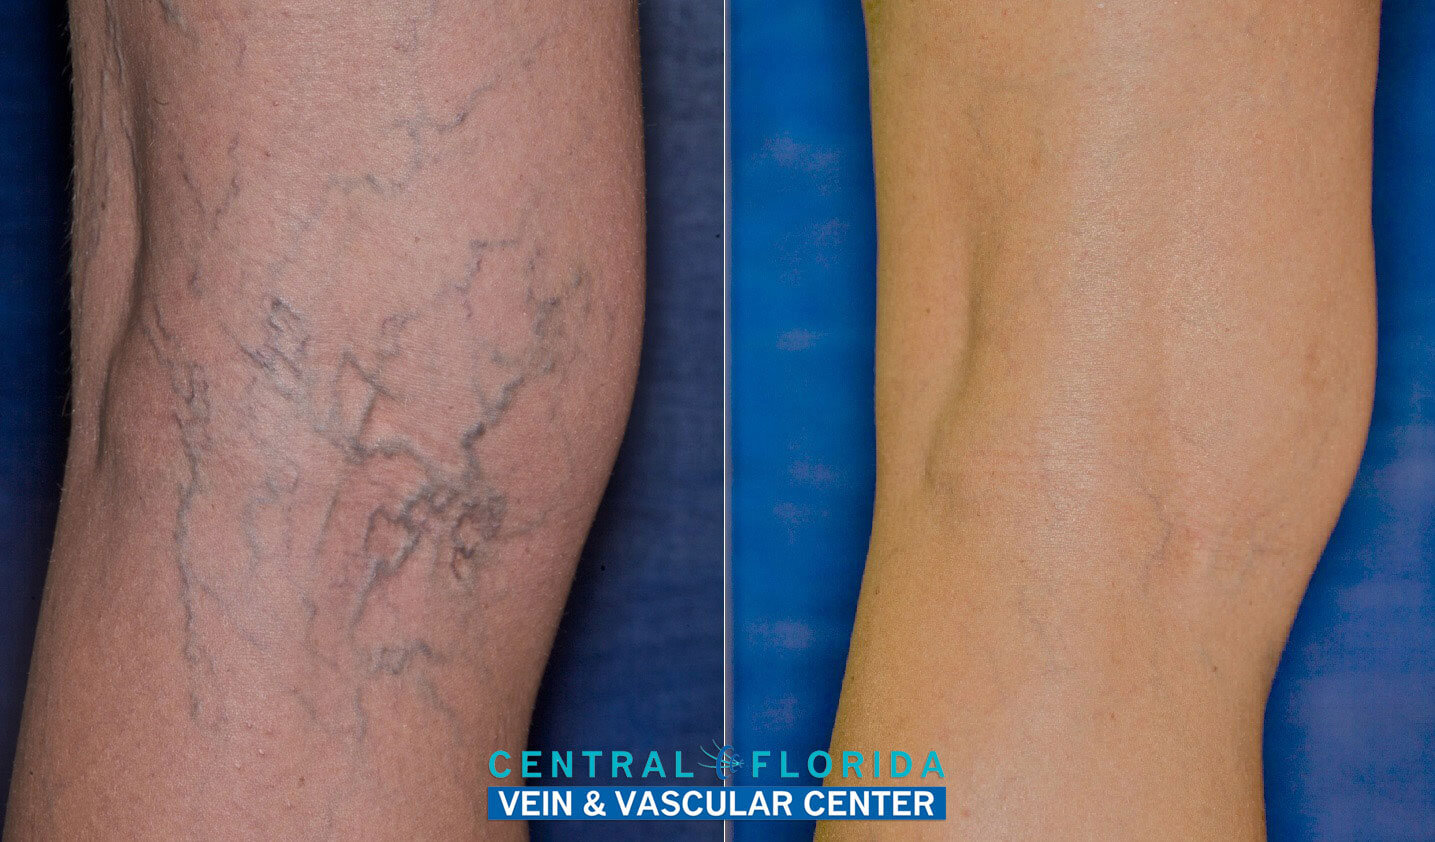 Before and After of Varicose Vein Treatment for Left Posterior Knee at Central Florida Vein & Vascular Center